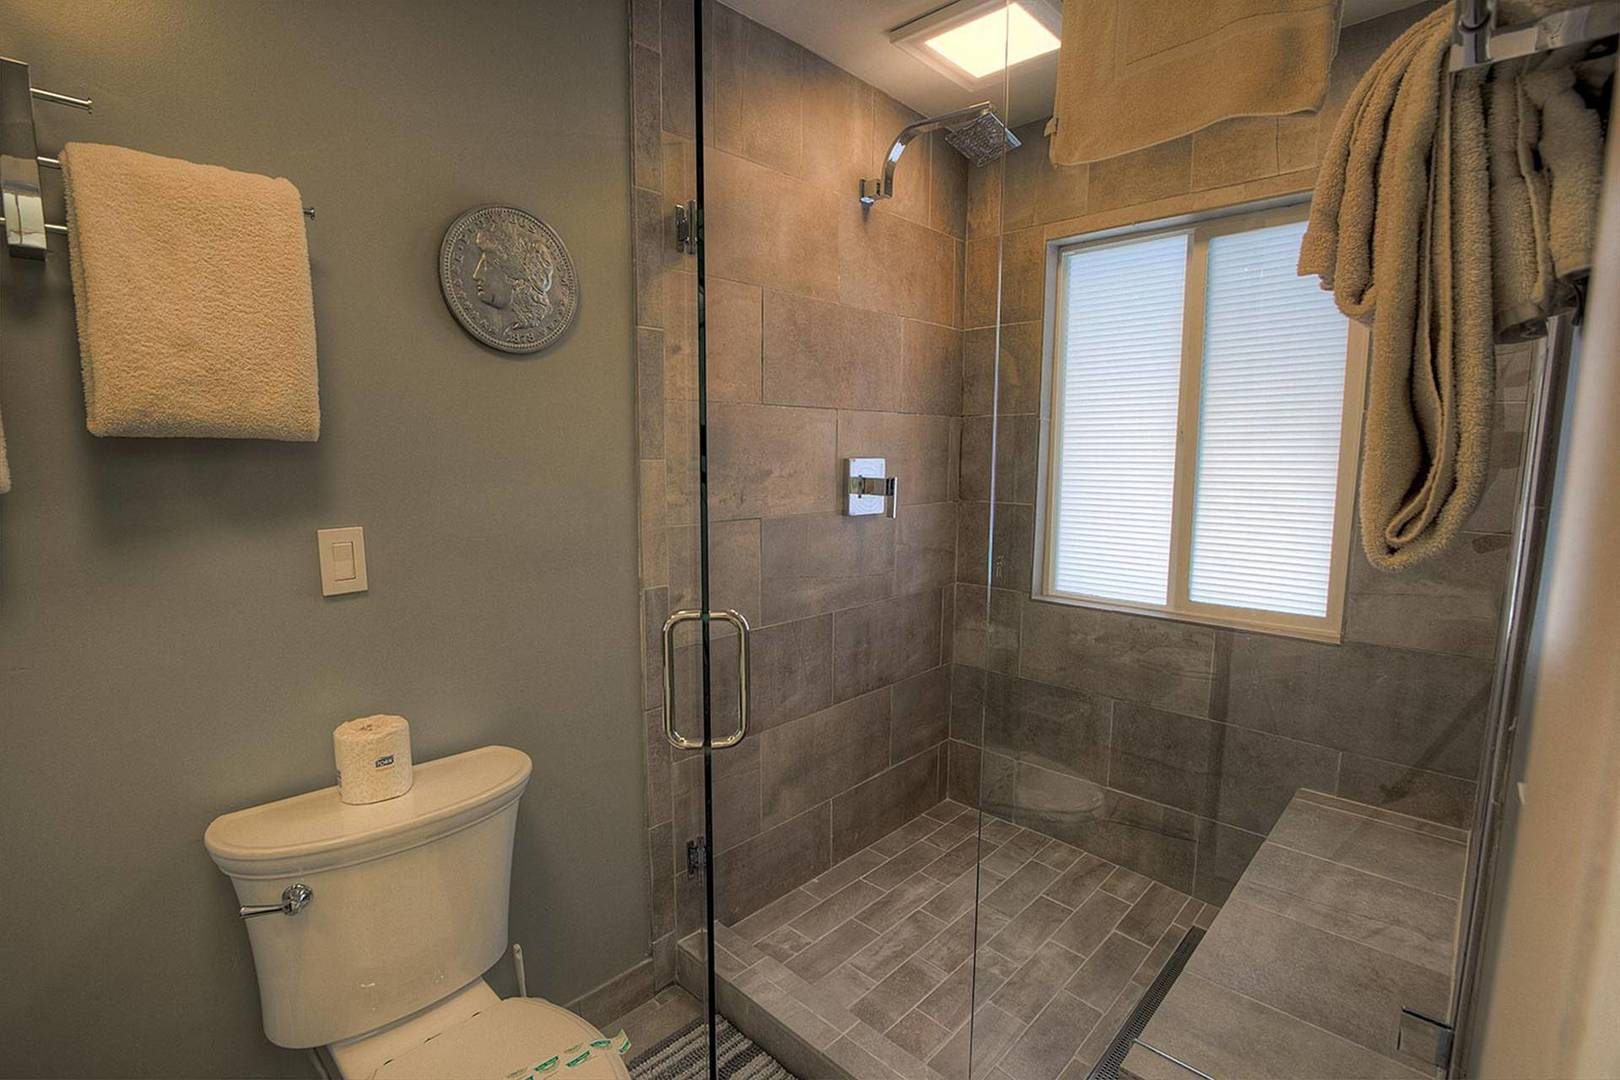 ivh0669 bathroom